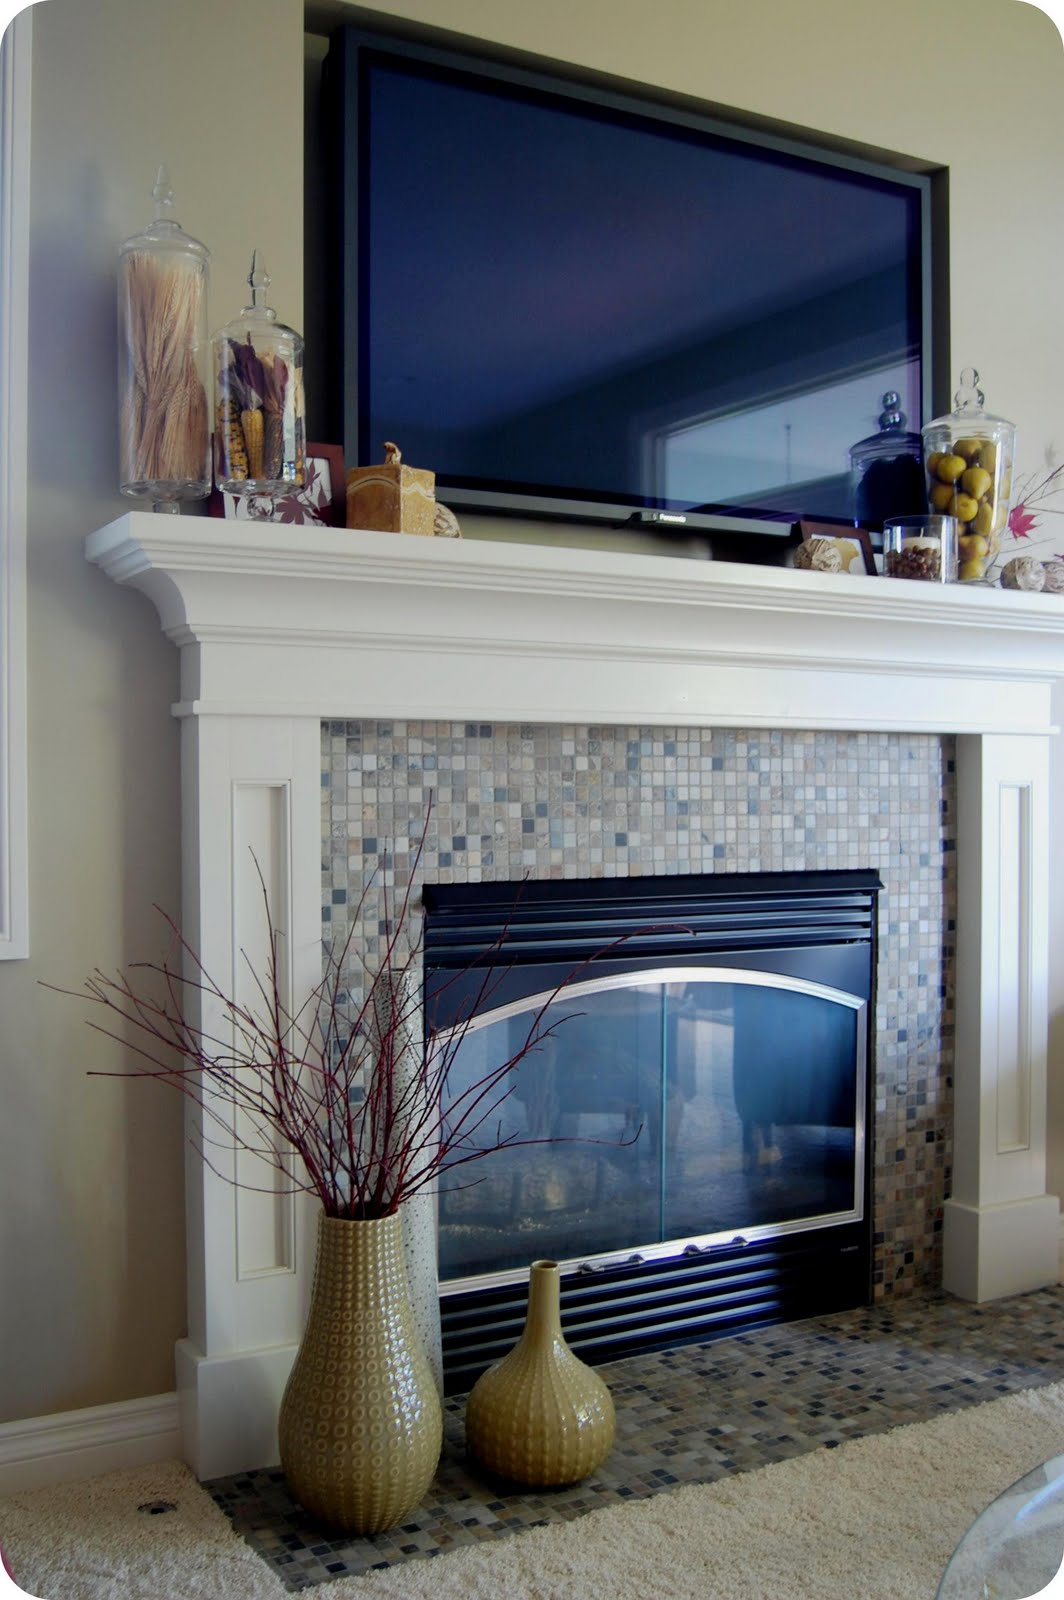 How to decorate a fireplace mantel with a tv fireplace for Decor over fireplace